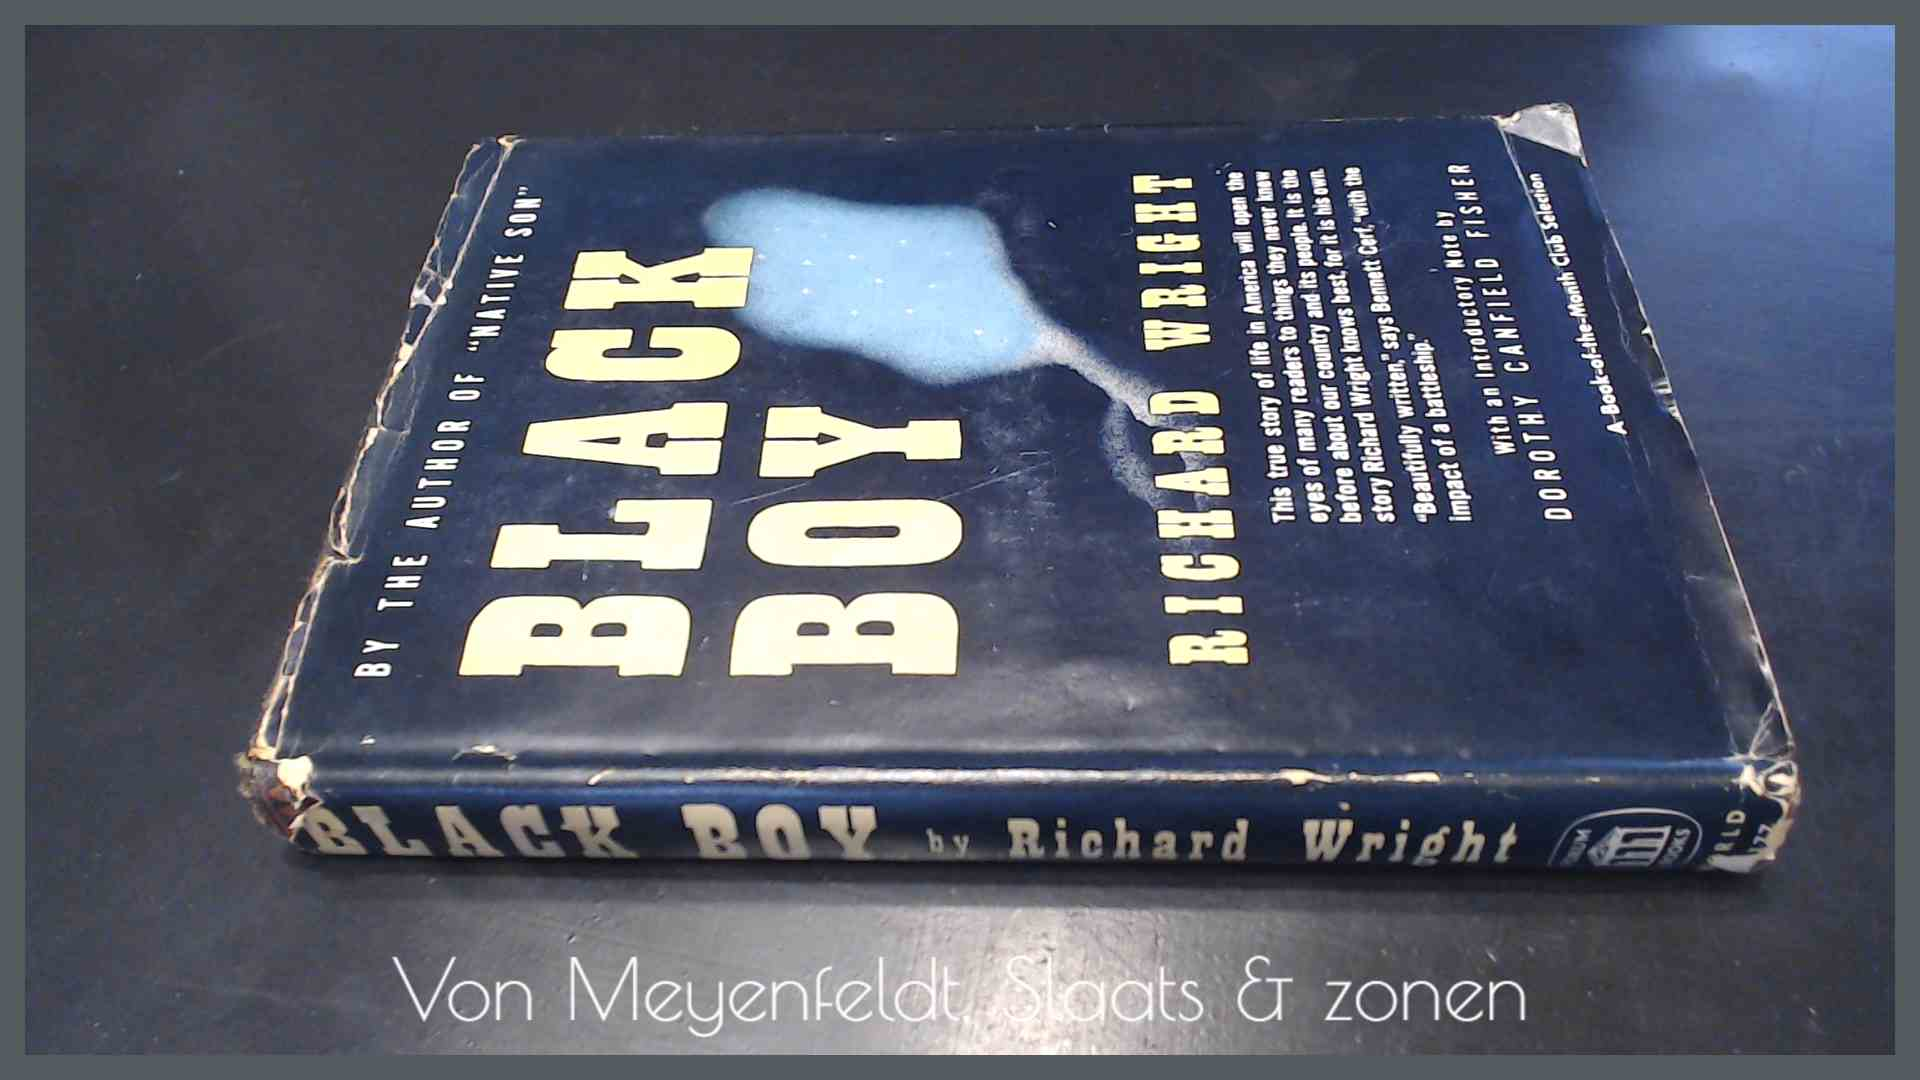 WRIGHT, RICHARD - Black boy - A record of childhood and youth